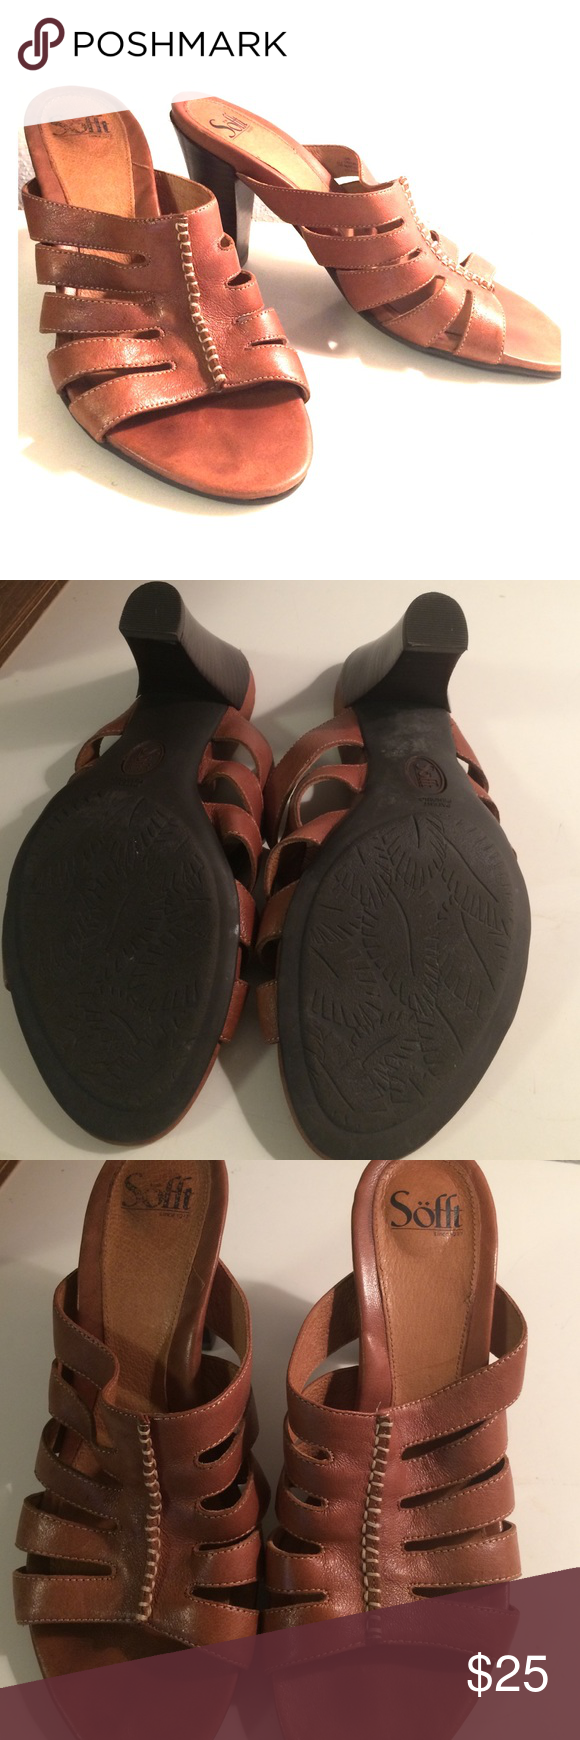 leather Sofft sandal heels 👠! ✨ Great condition. Soles look they they weren't even worn. Leather is a little worn but that simply gives it a chic look! Would look great paired with about anything. Heel height is 4 inches from back of shoe to bottom of the heel. Comes from smoke free home. Thanks! Sofft Shoes Heels